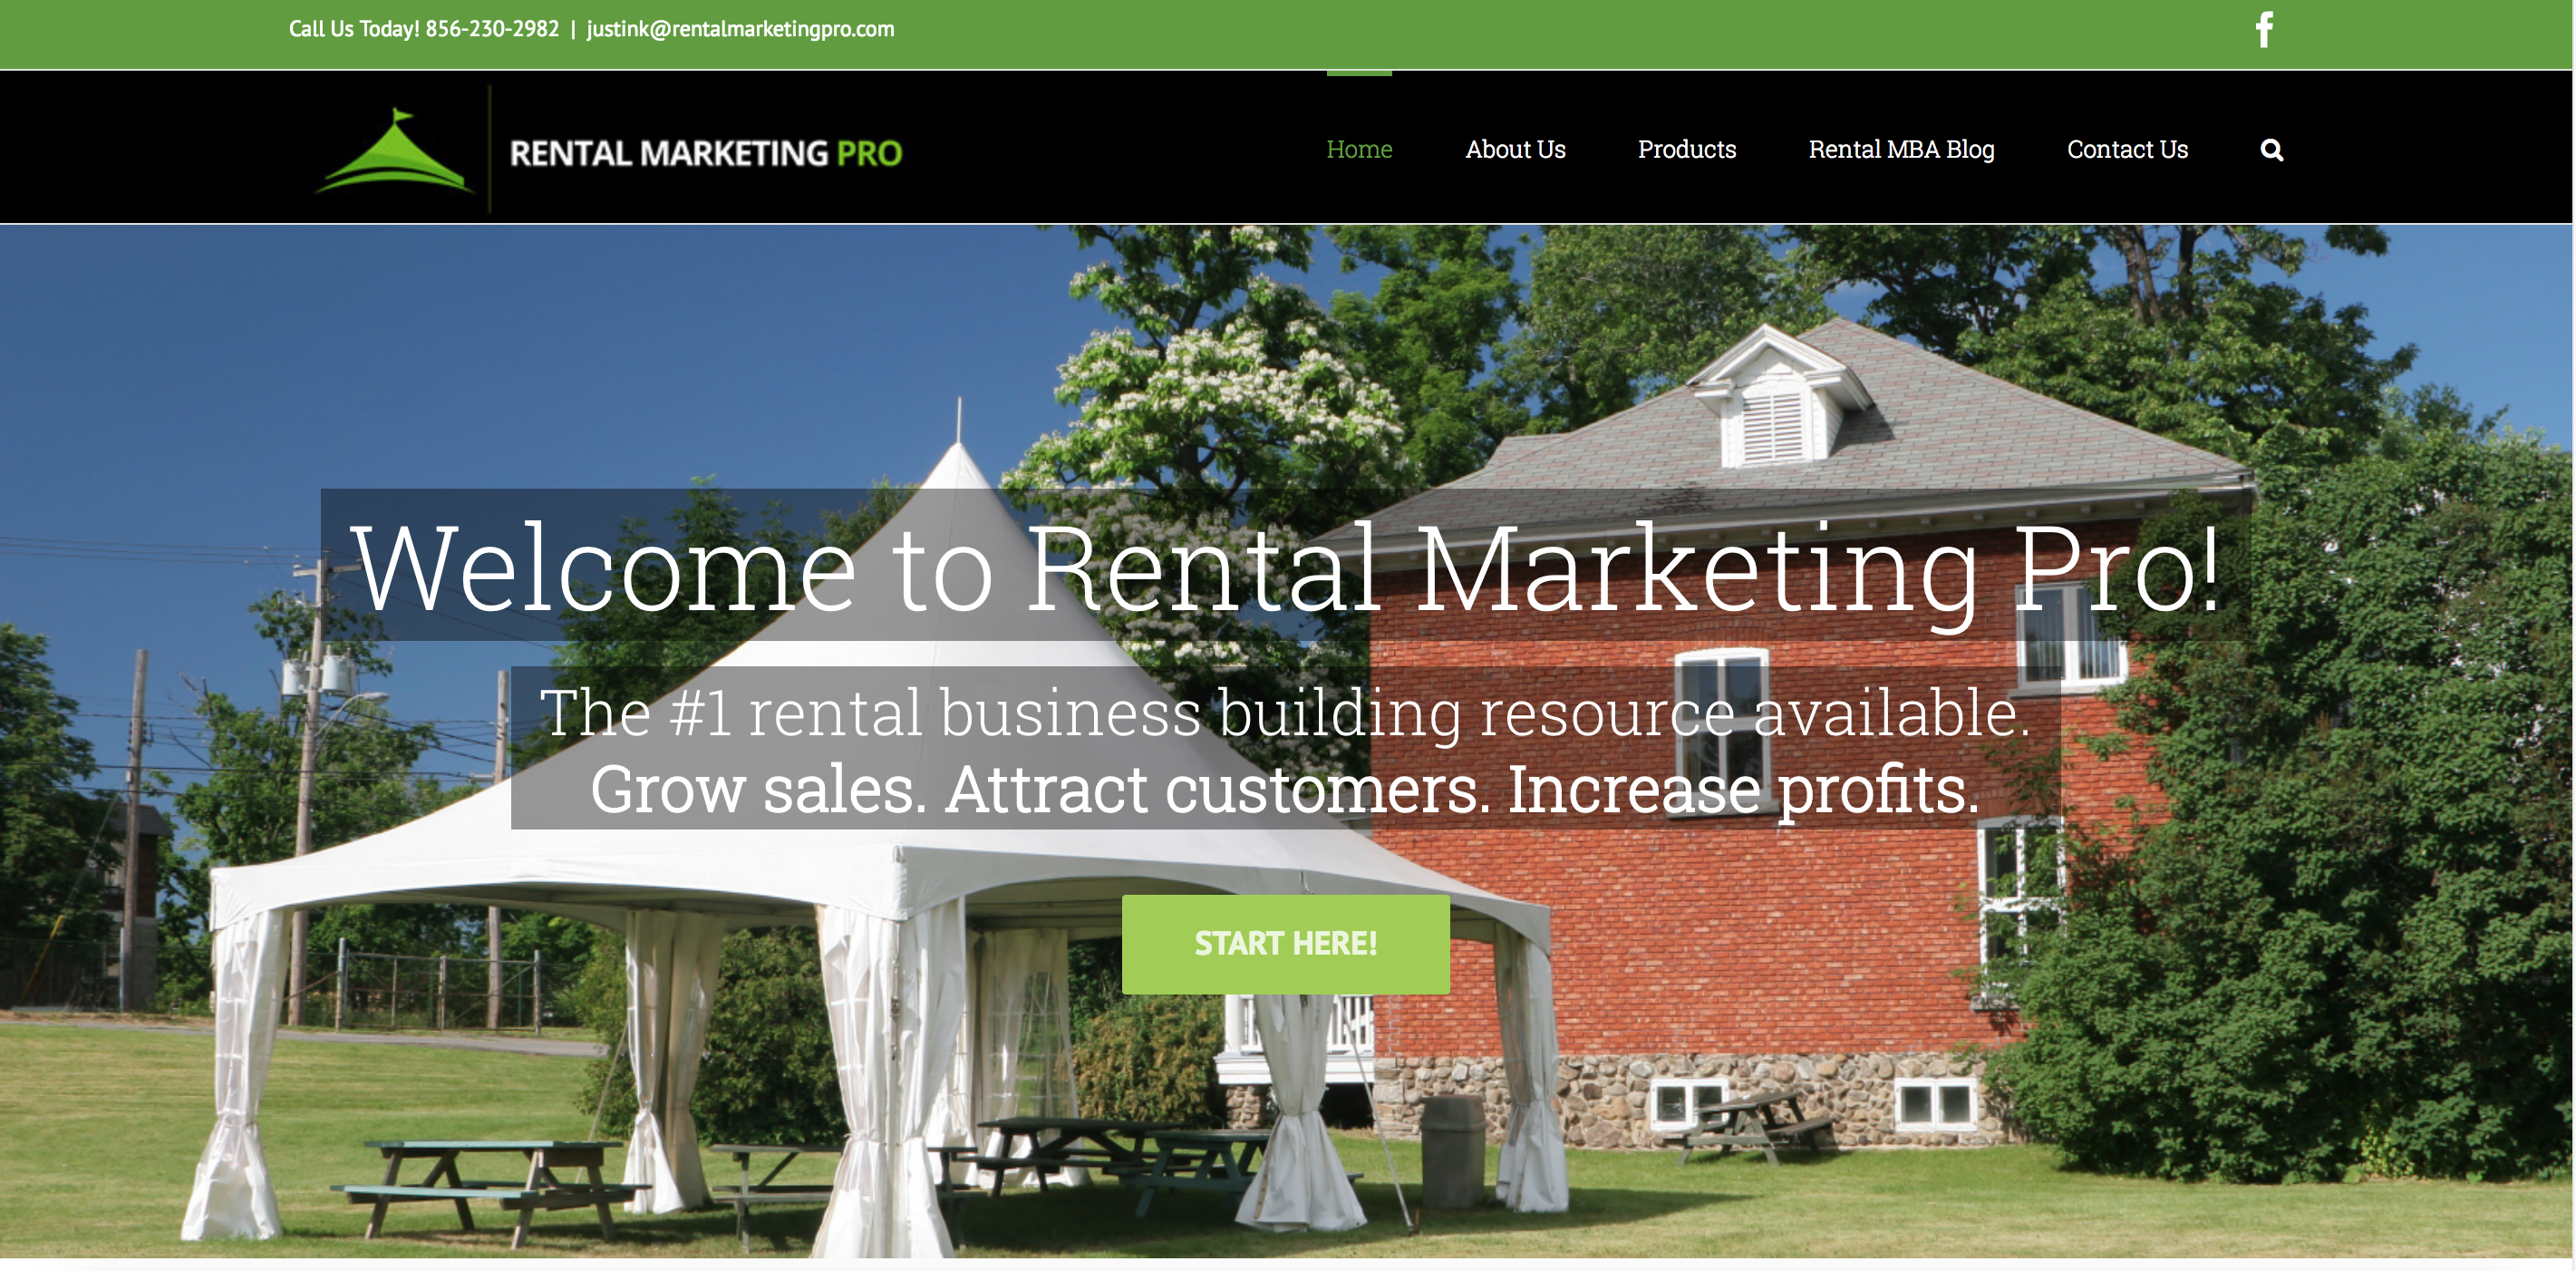 Rental marketing pro home page